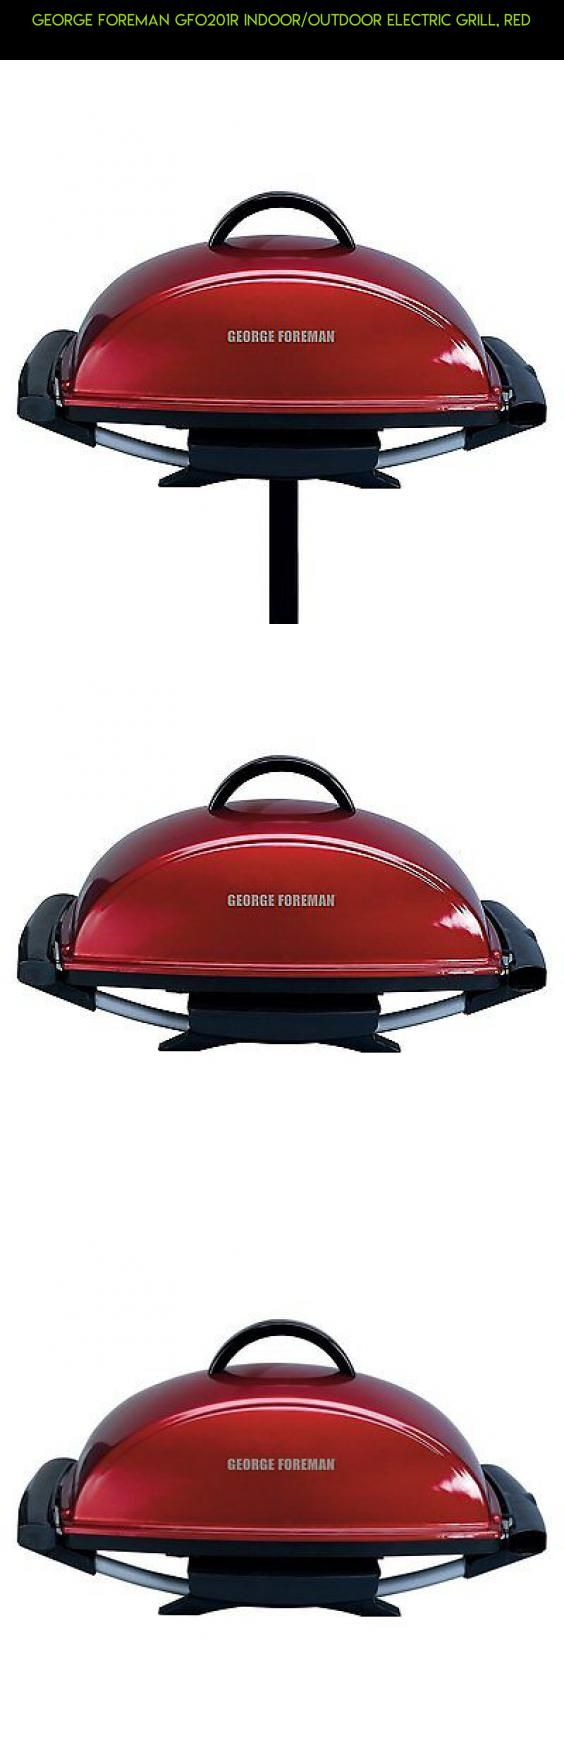 George Foreman GFO201R Indoor/Outdoor Electric Grill, Red #plans #drone #fpv #racing #camera #shopping #technology #indoor #grills #electric #tech #kit #products #outdoor #parts #gadgets